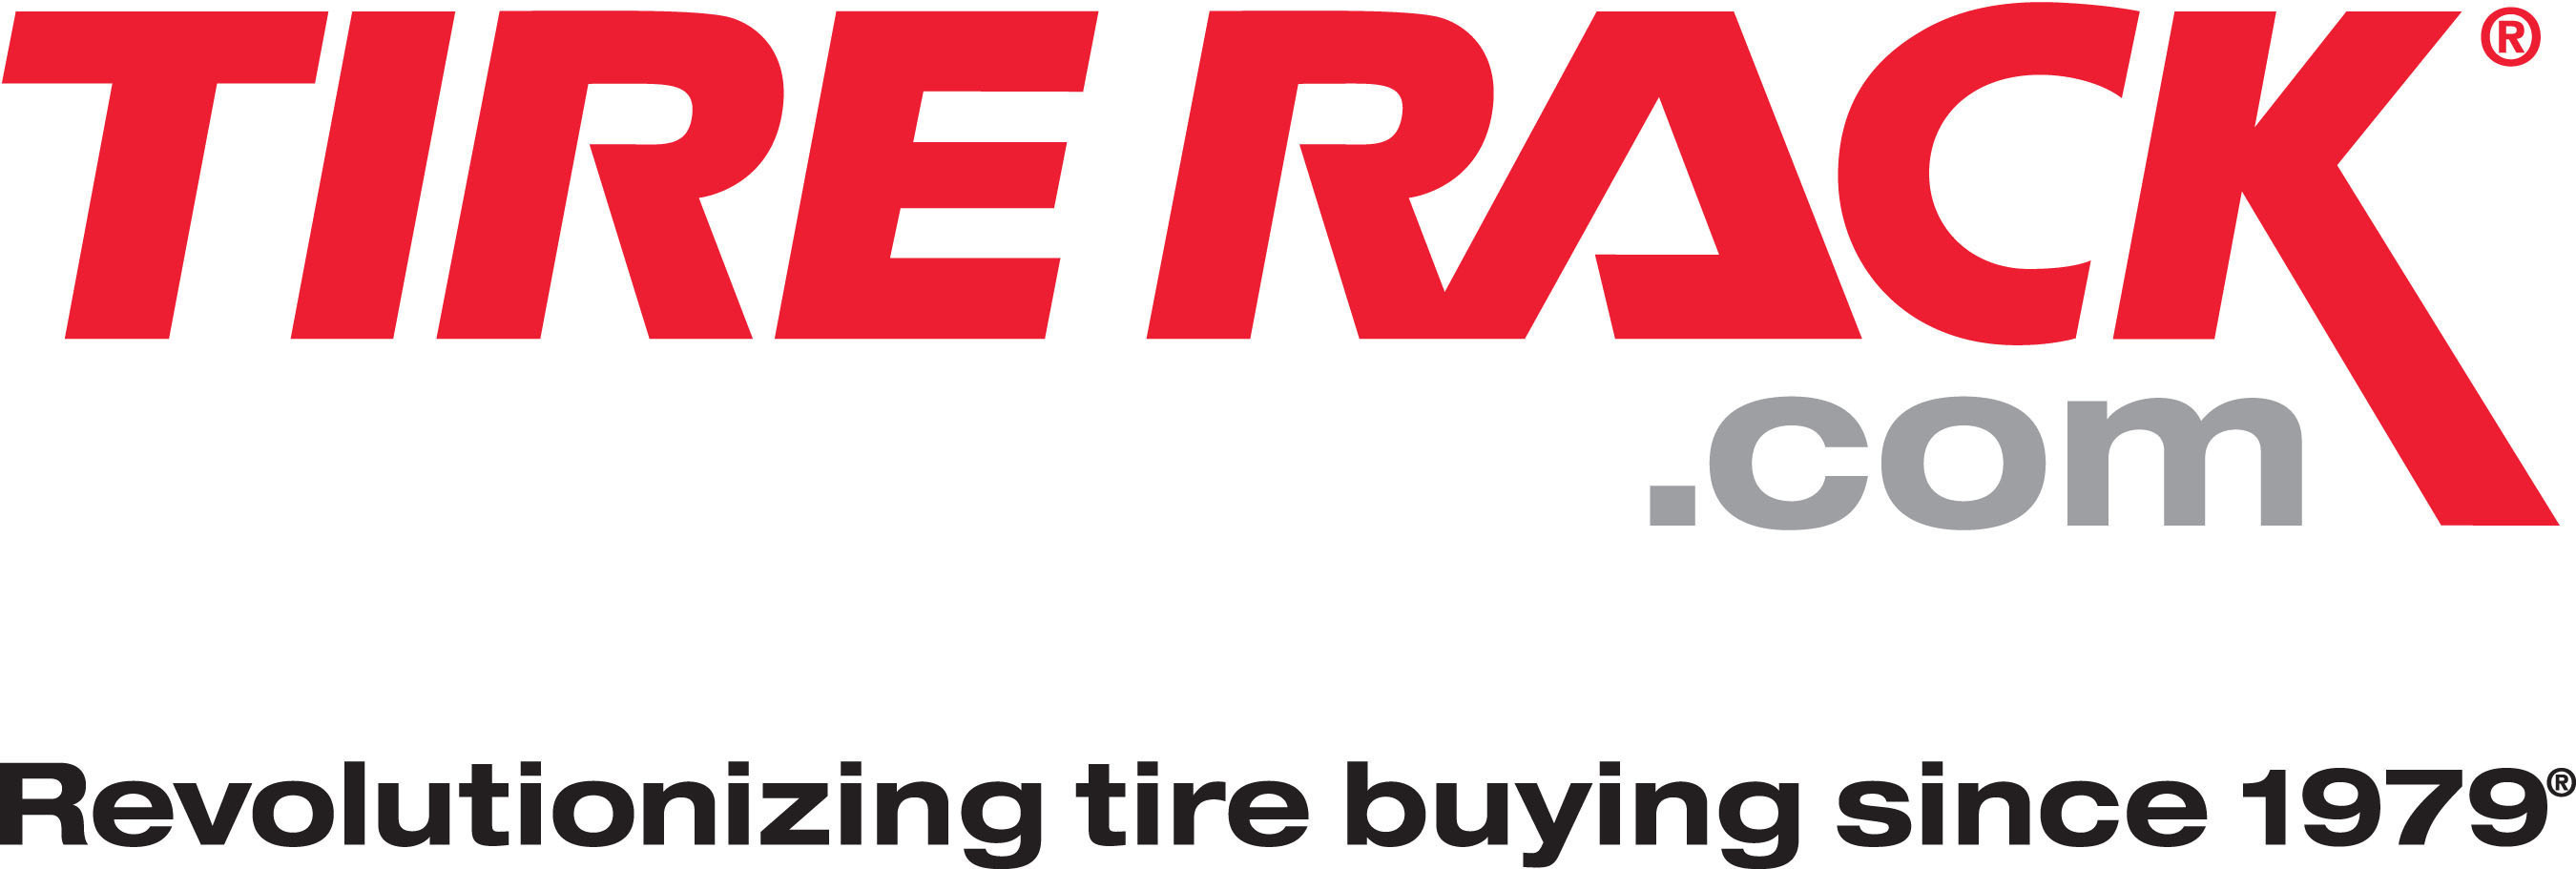 New Tire Rack Website Offers A Fresh Shopping Experience At The World's Leading Online Tire Resource Center